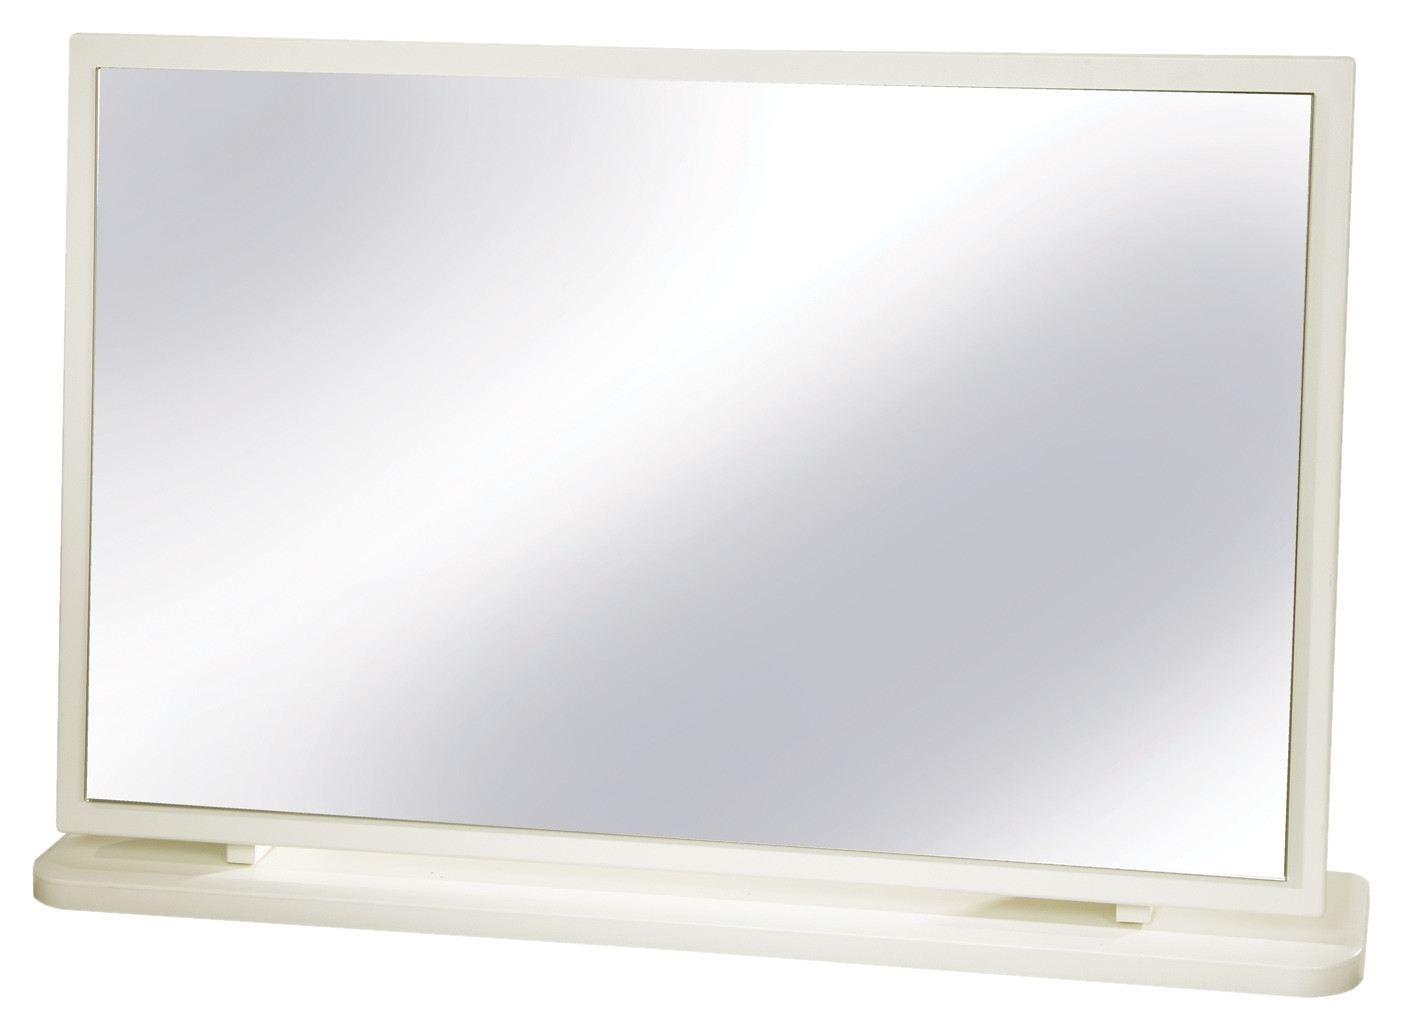 Avalon Cream Large Dressing Table Mirror Default Store View With Regard To Large Cream Mirror (View 14 of 15)